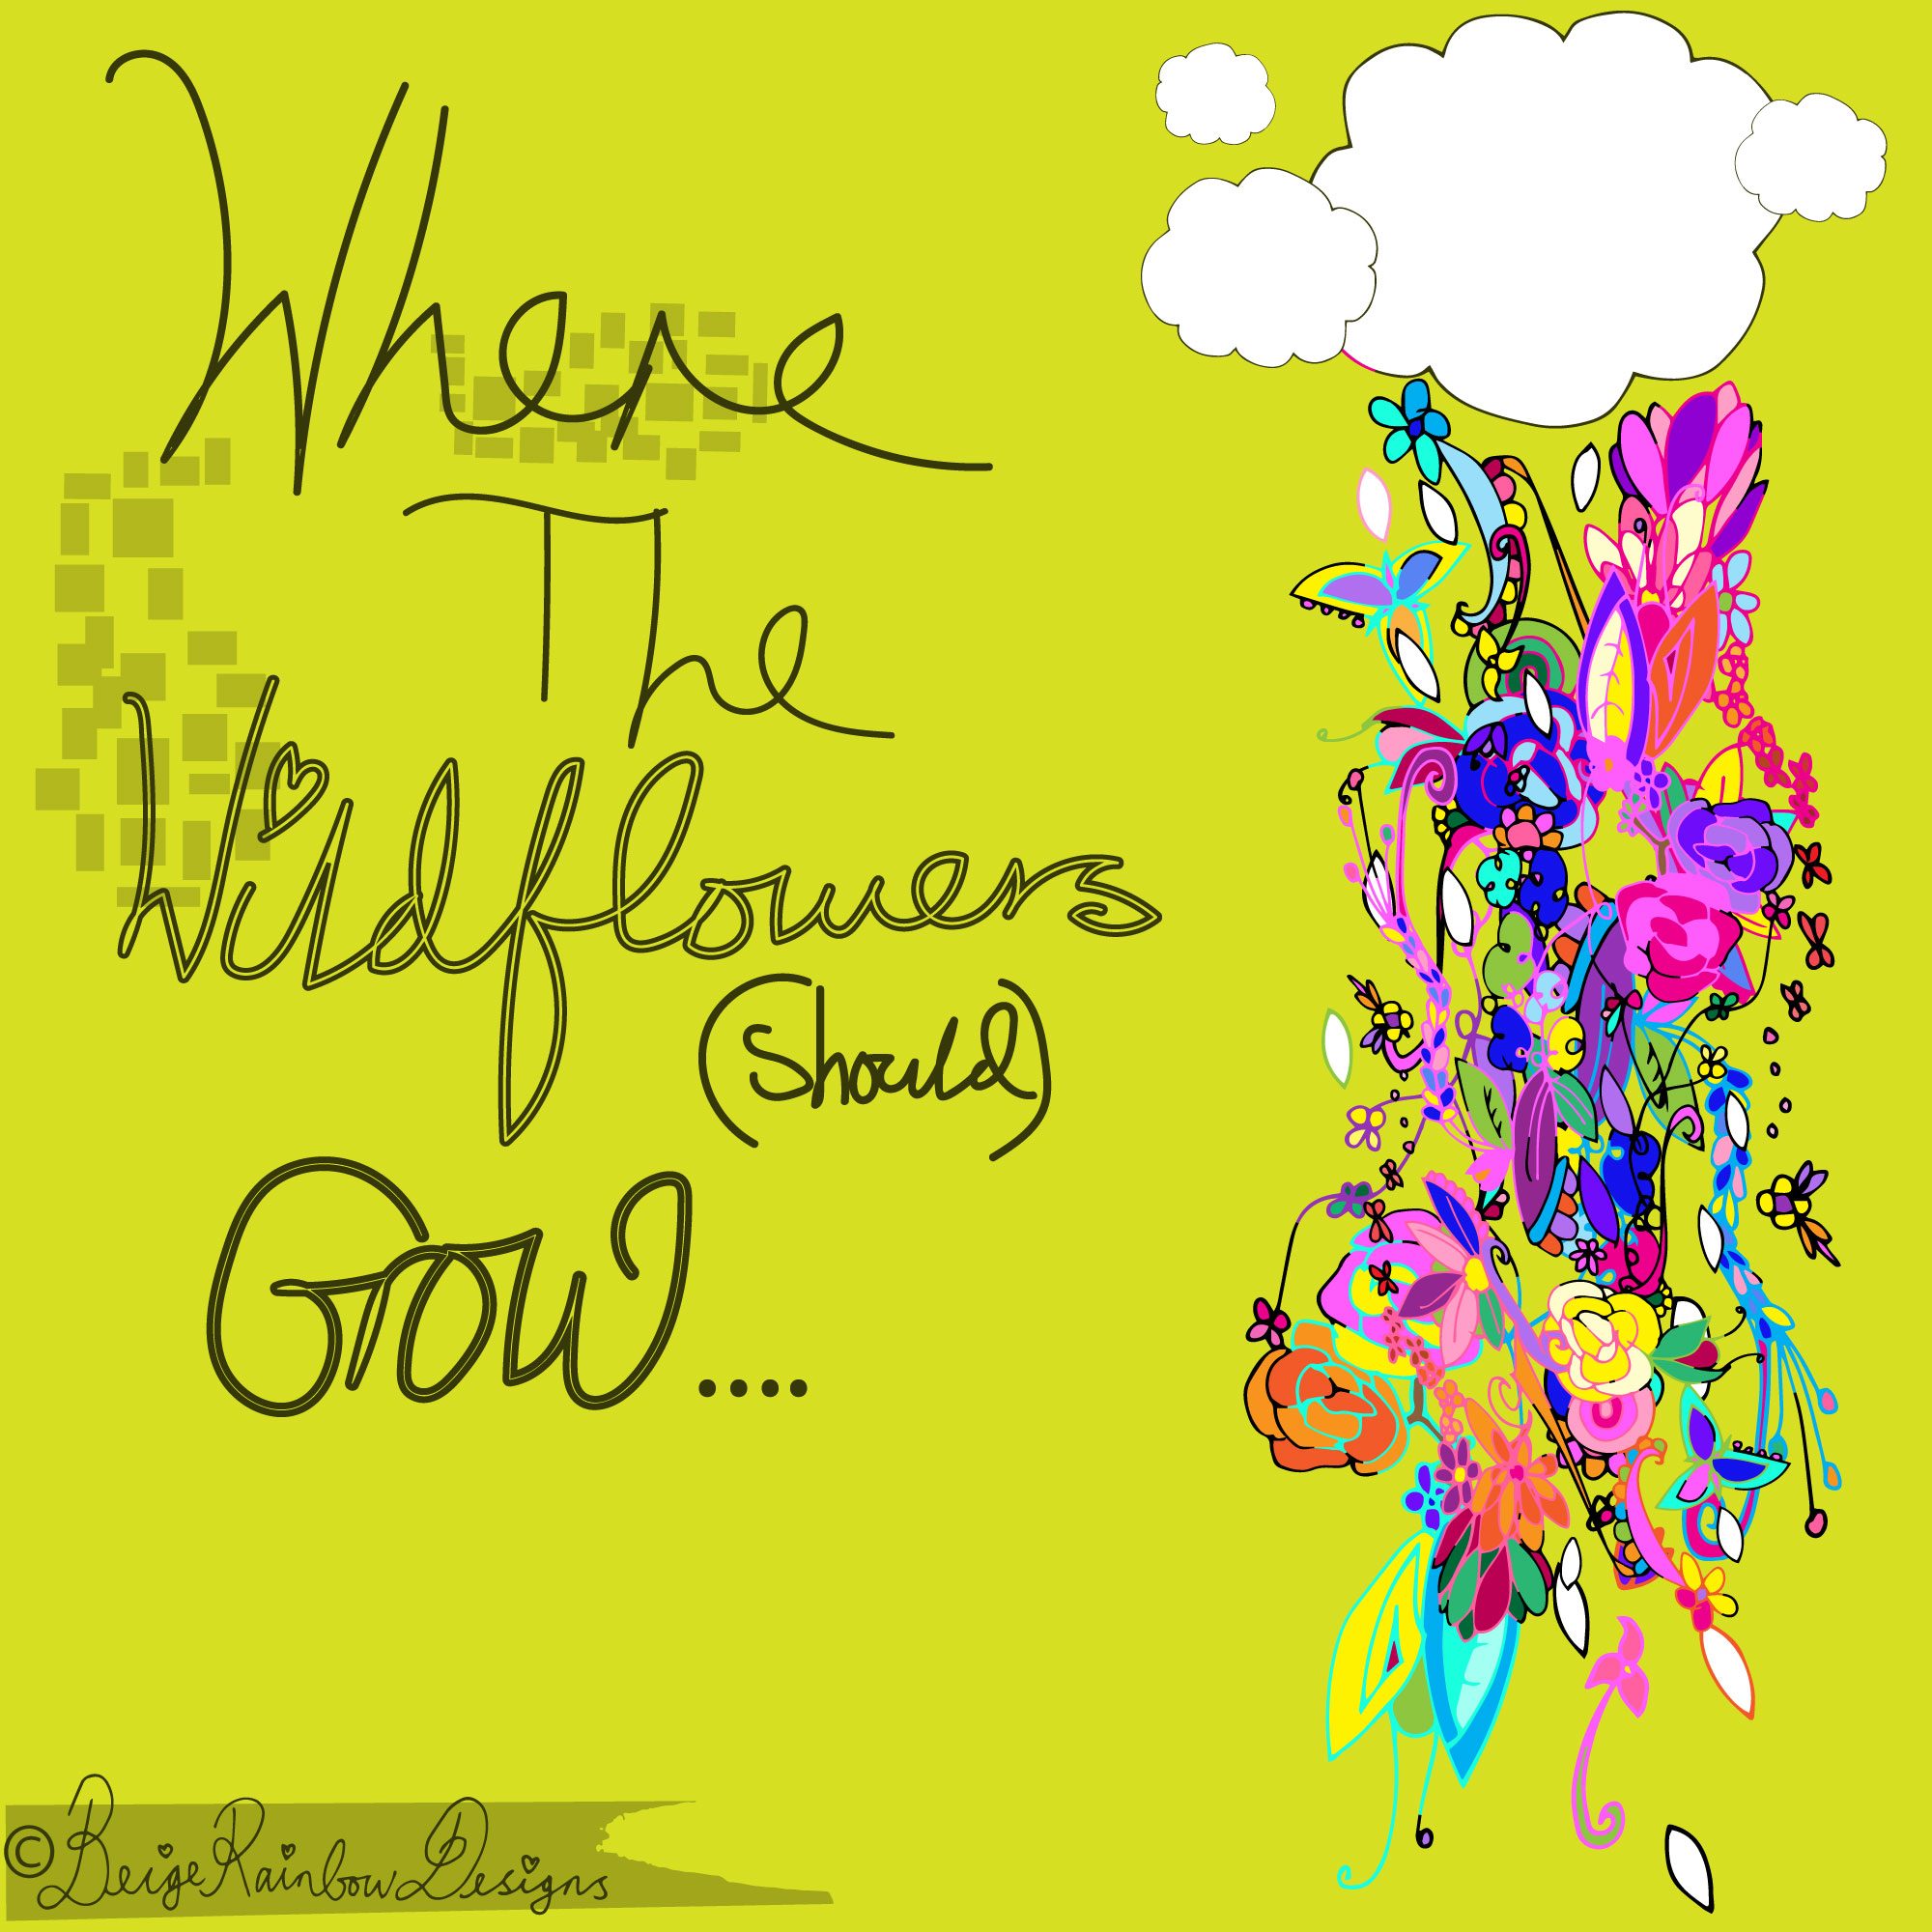 Where The Wildflowers (should) Grow - Clouds